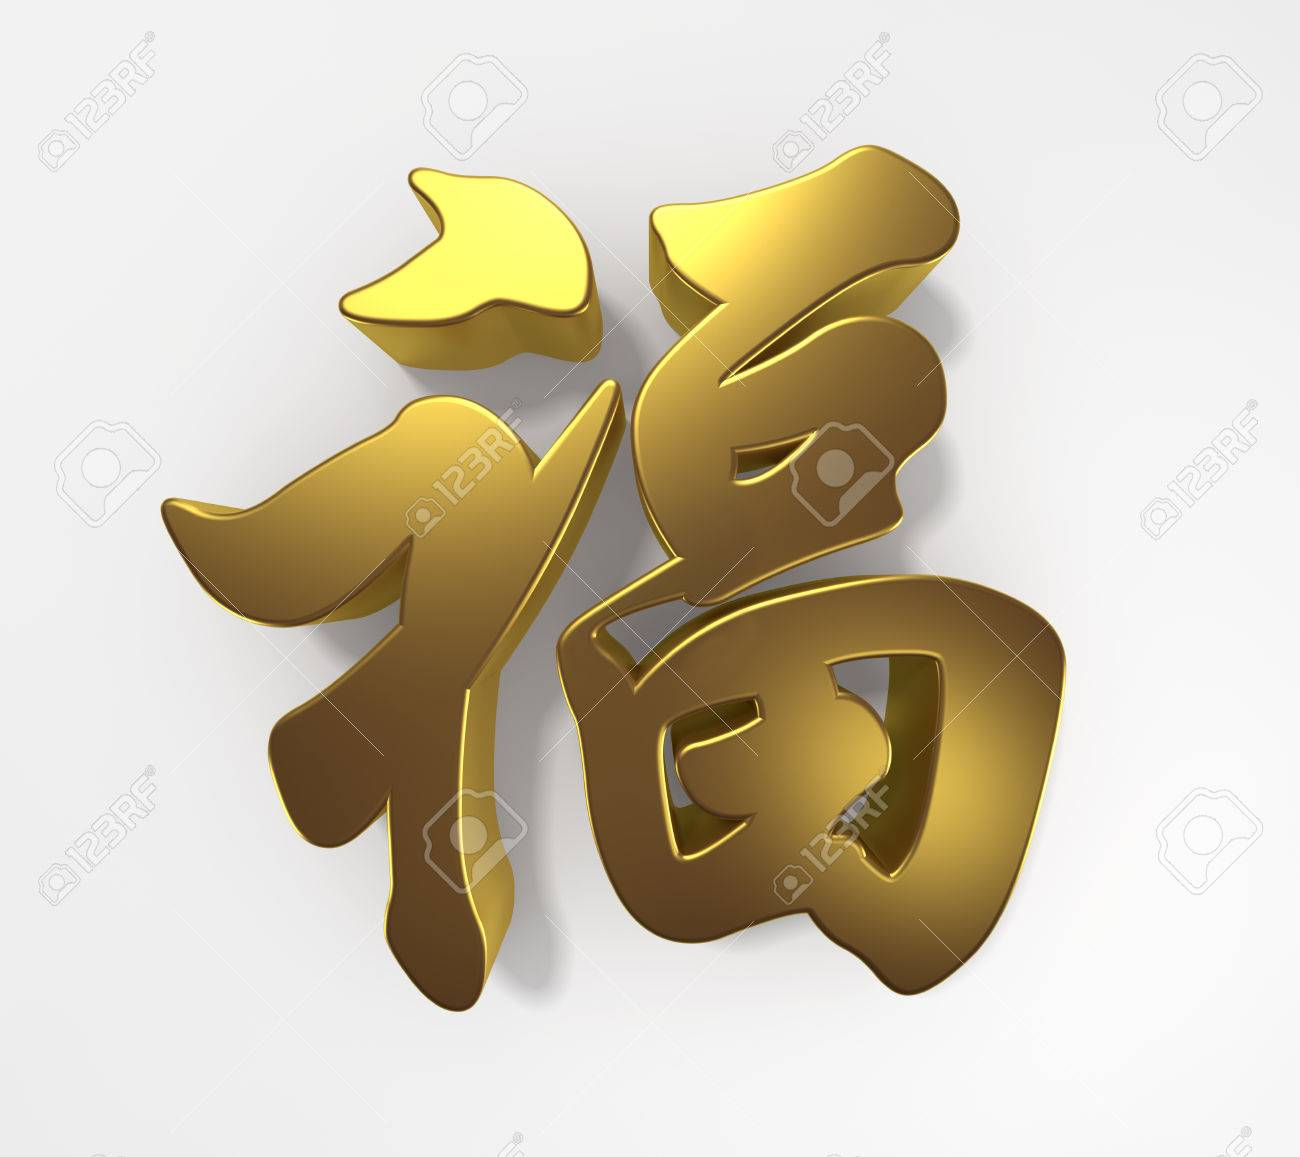 Golden chinese character fu which means good luck blessing is golden chinese character kristyandbryce Choice Image